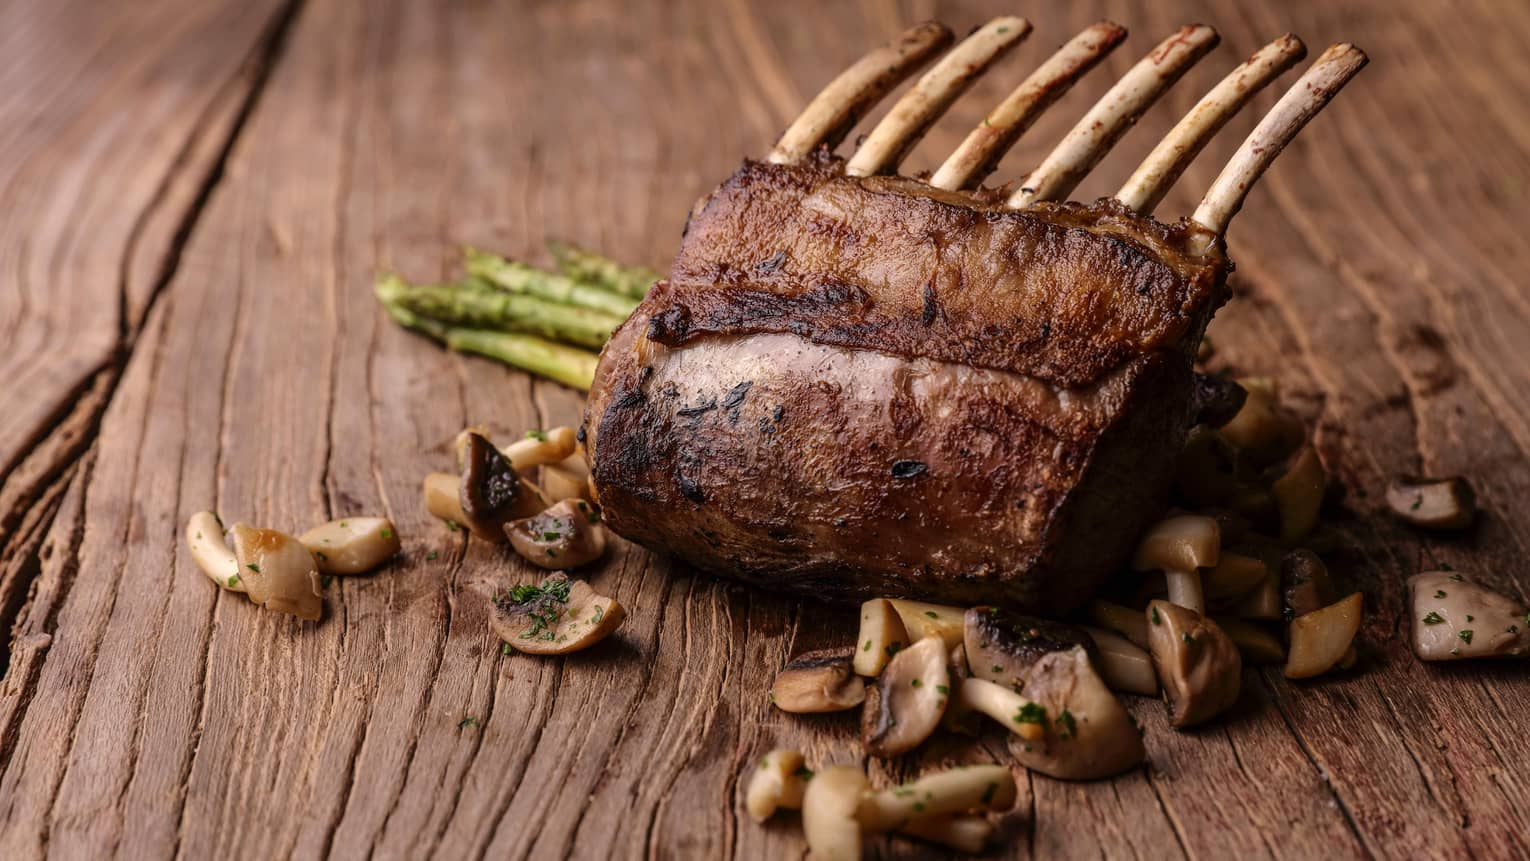 Grilled Australian Lamb rack on wood counter with mushrooms, asparagus